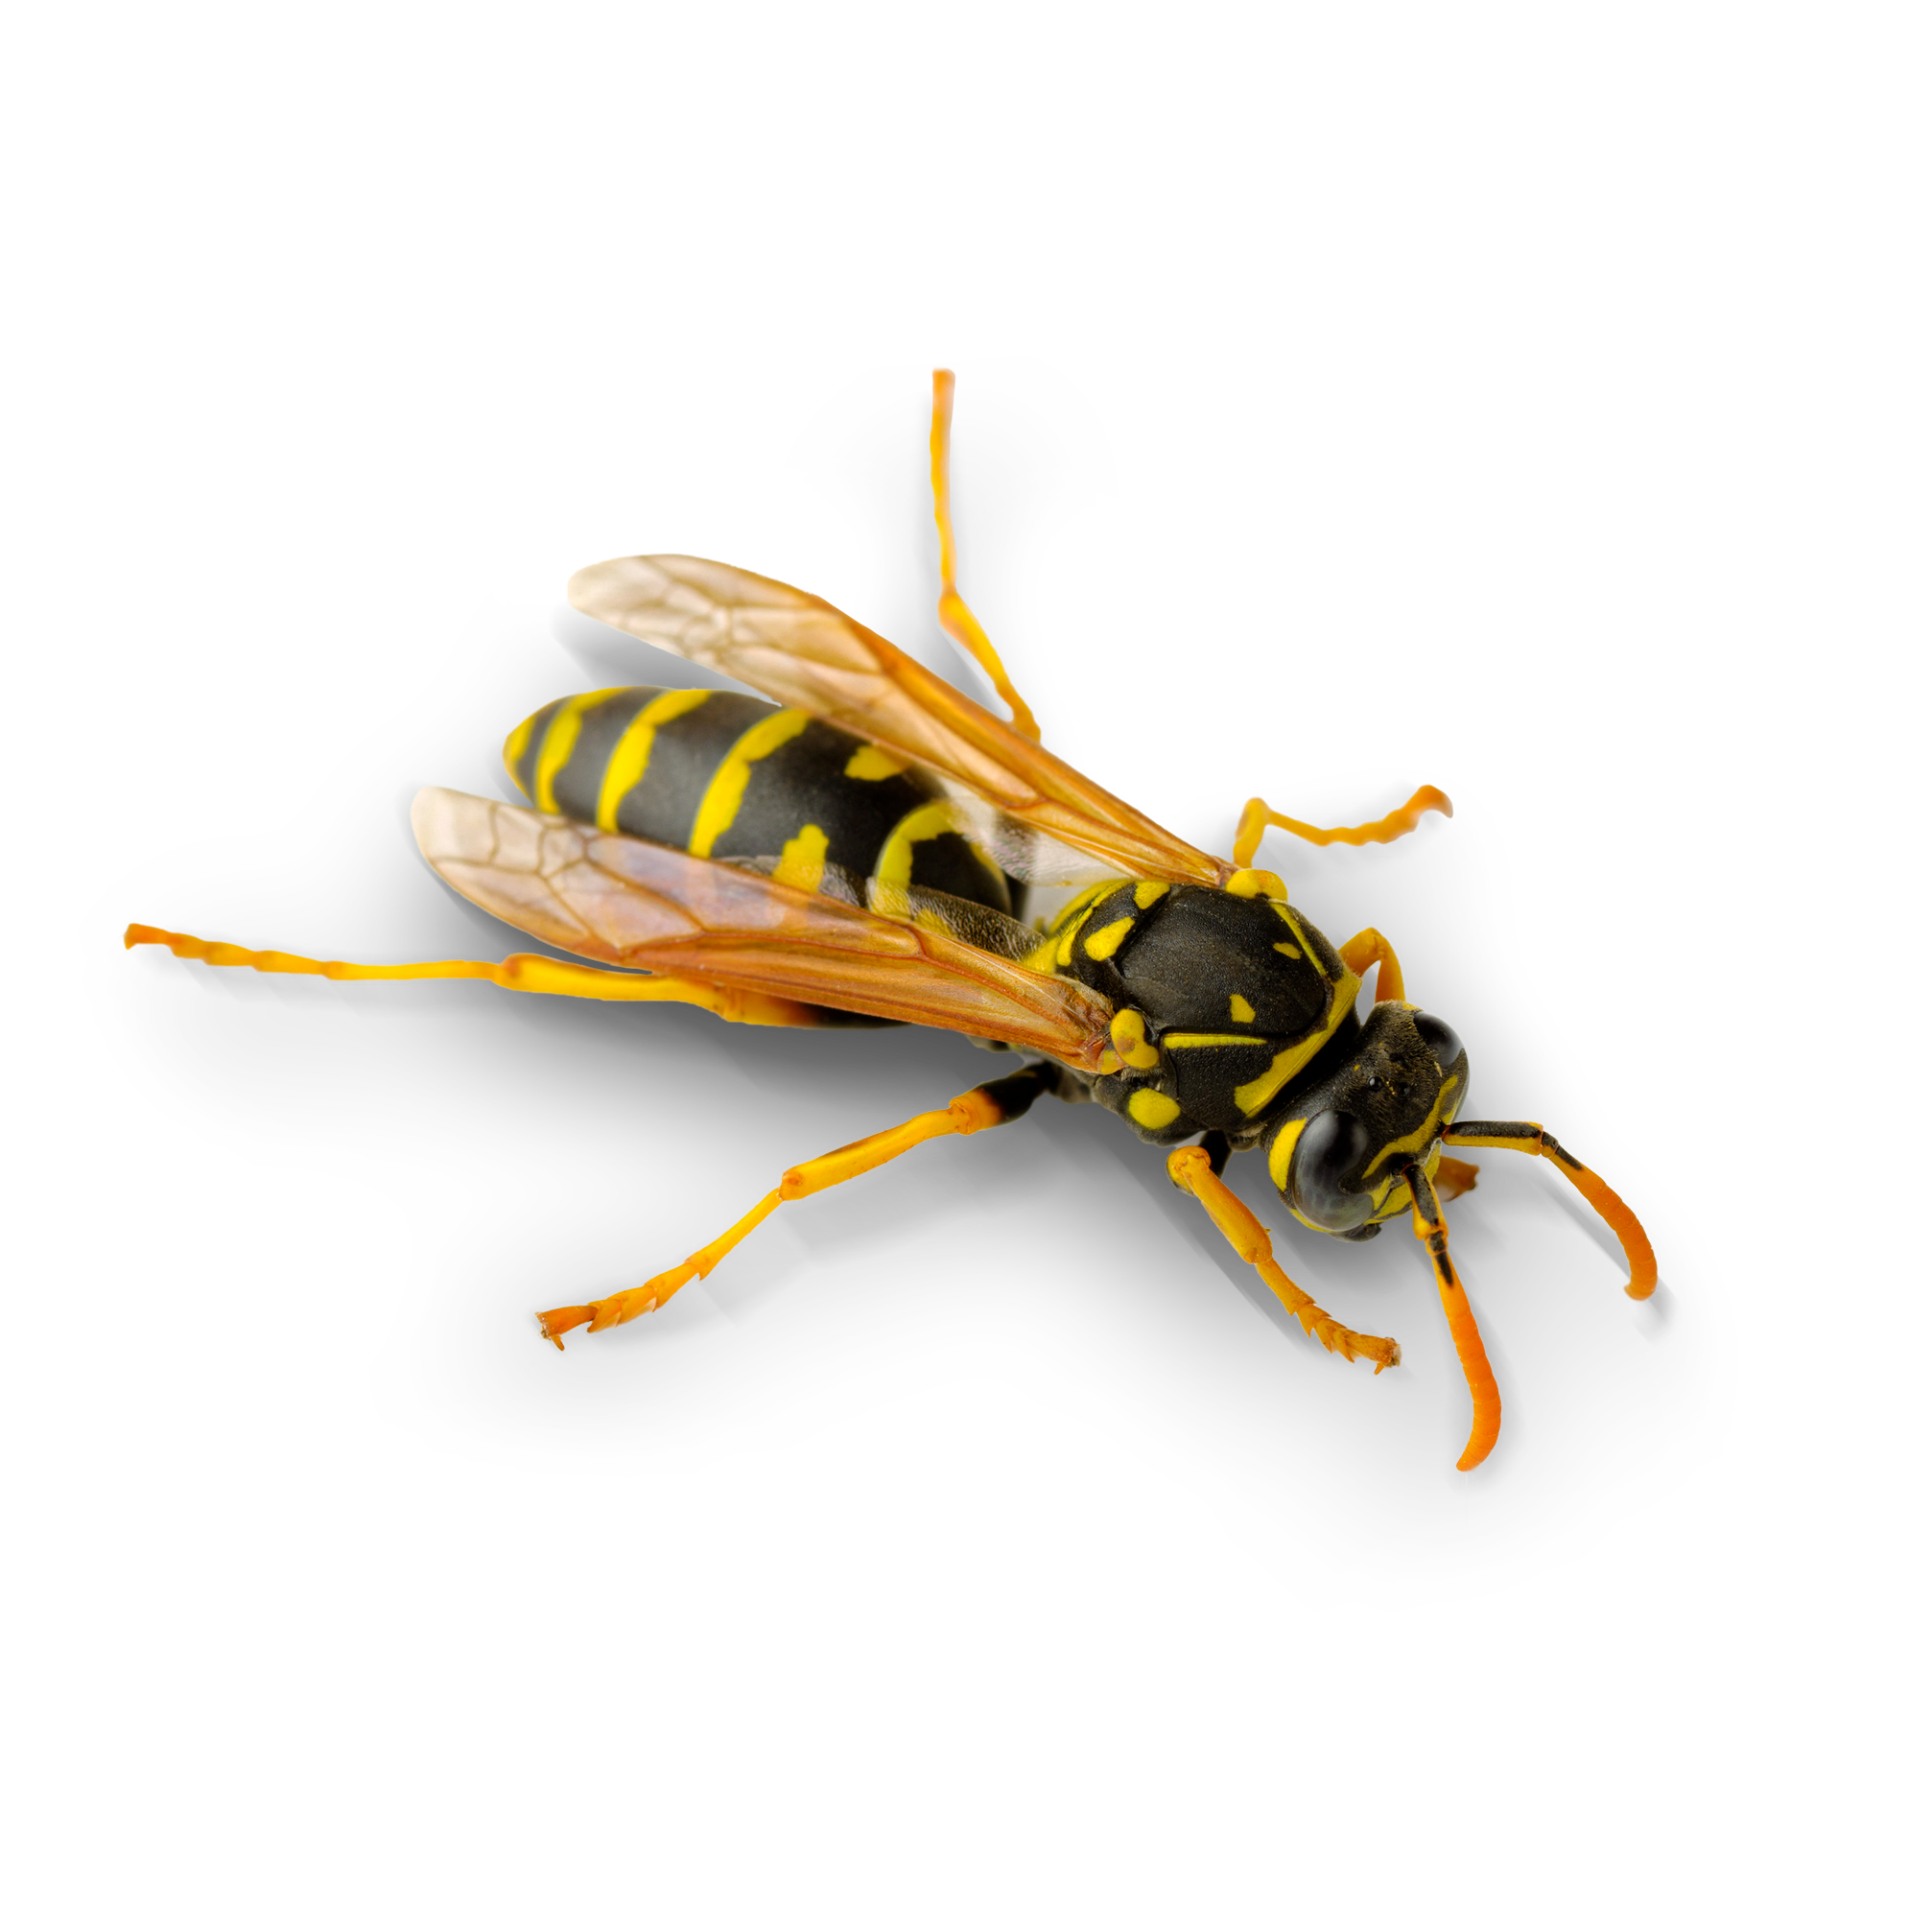 https://mantovaservice.it/wp-content/uploads/2017/11/wasp-01.png